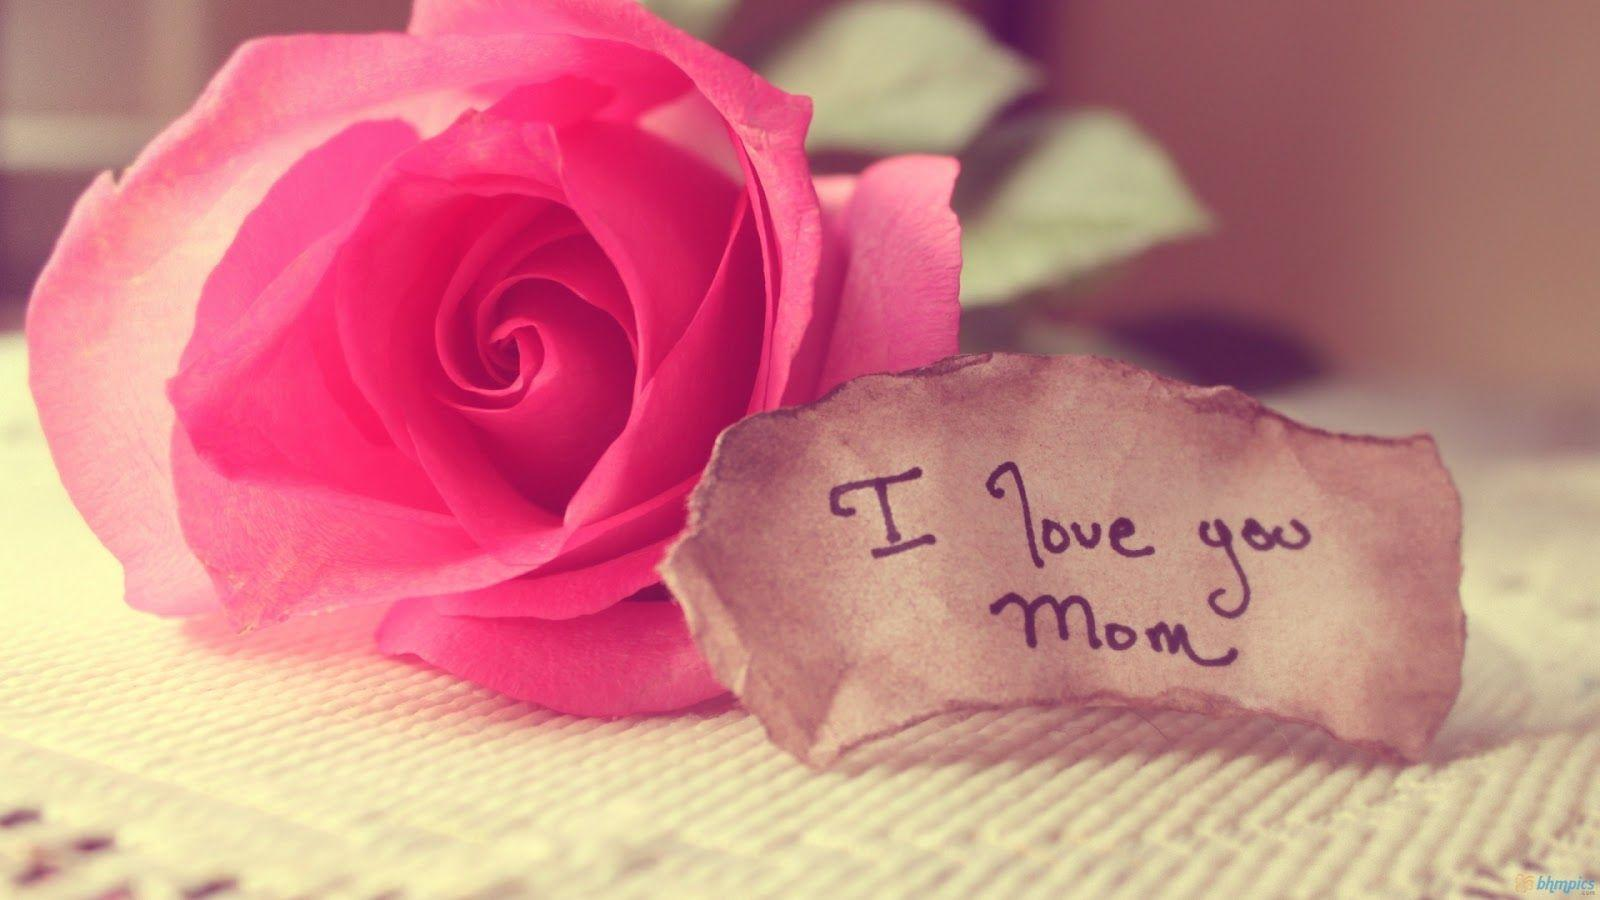 I Love My Mom Wallpapers 1600x900